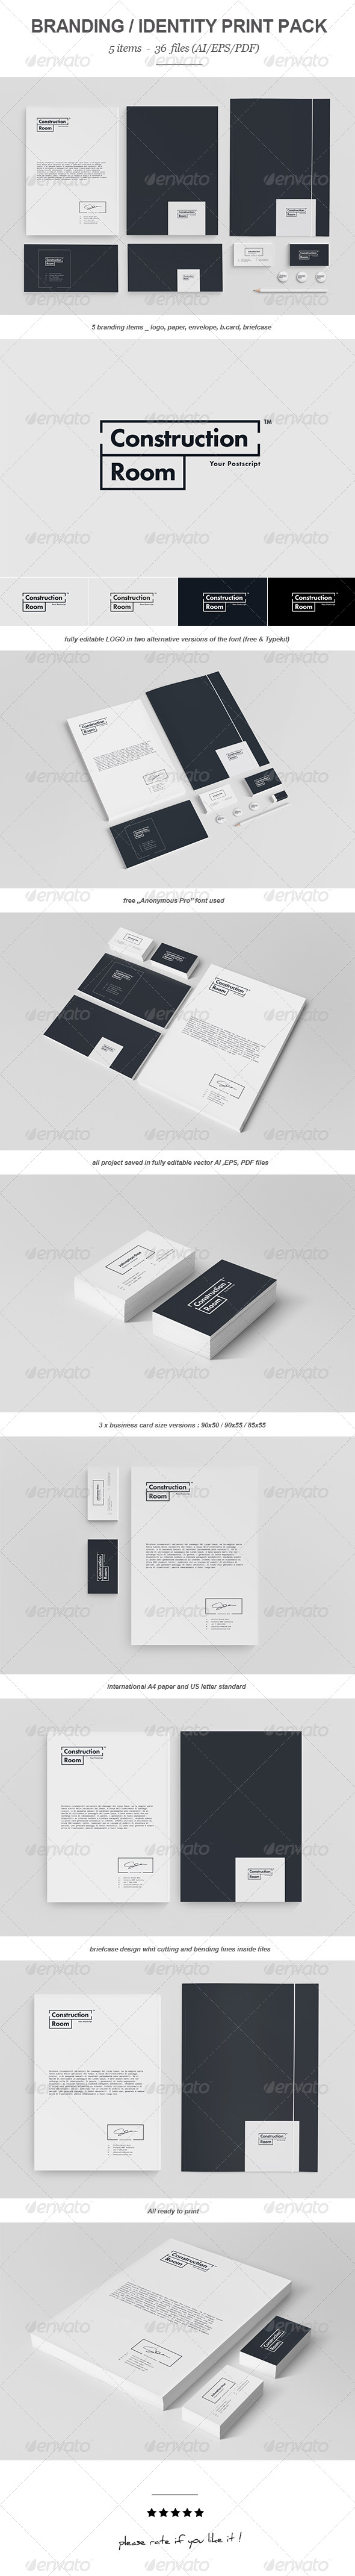 Construction Room Branding Print Pack